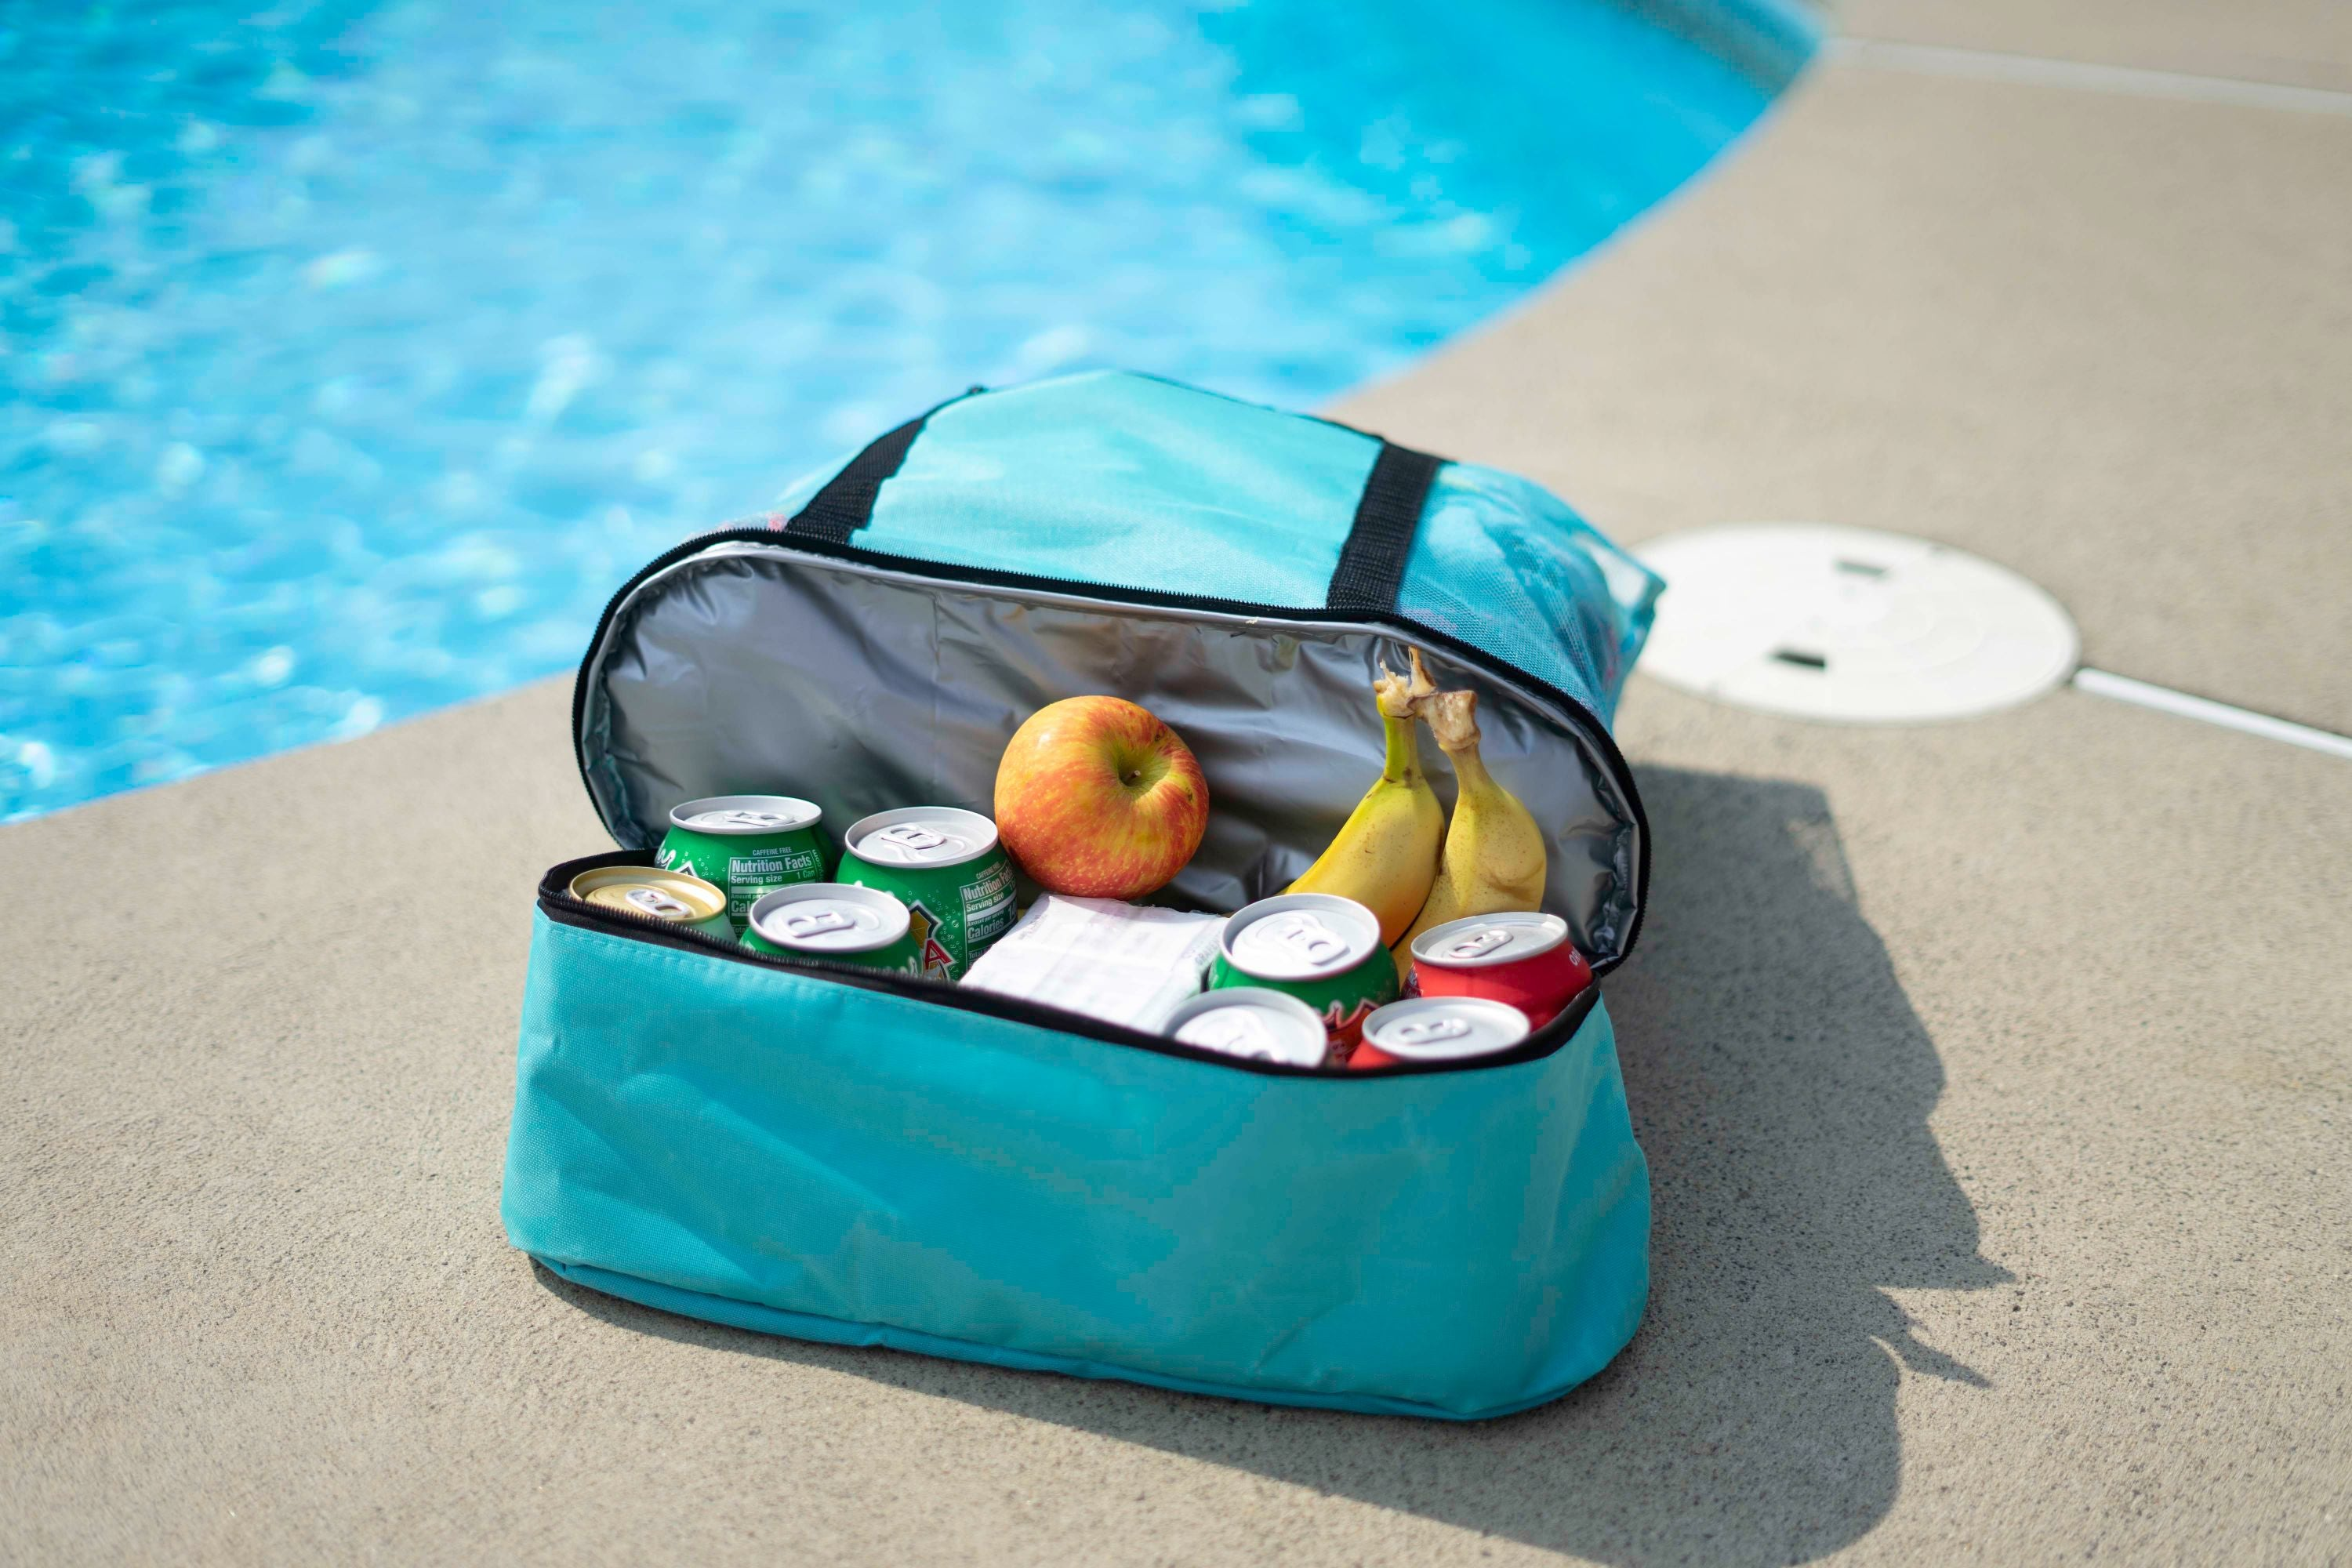 shopify-Insulated Cooler Picnic Beach Tote Bag-2